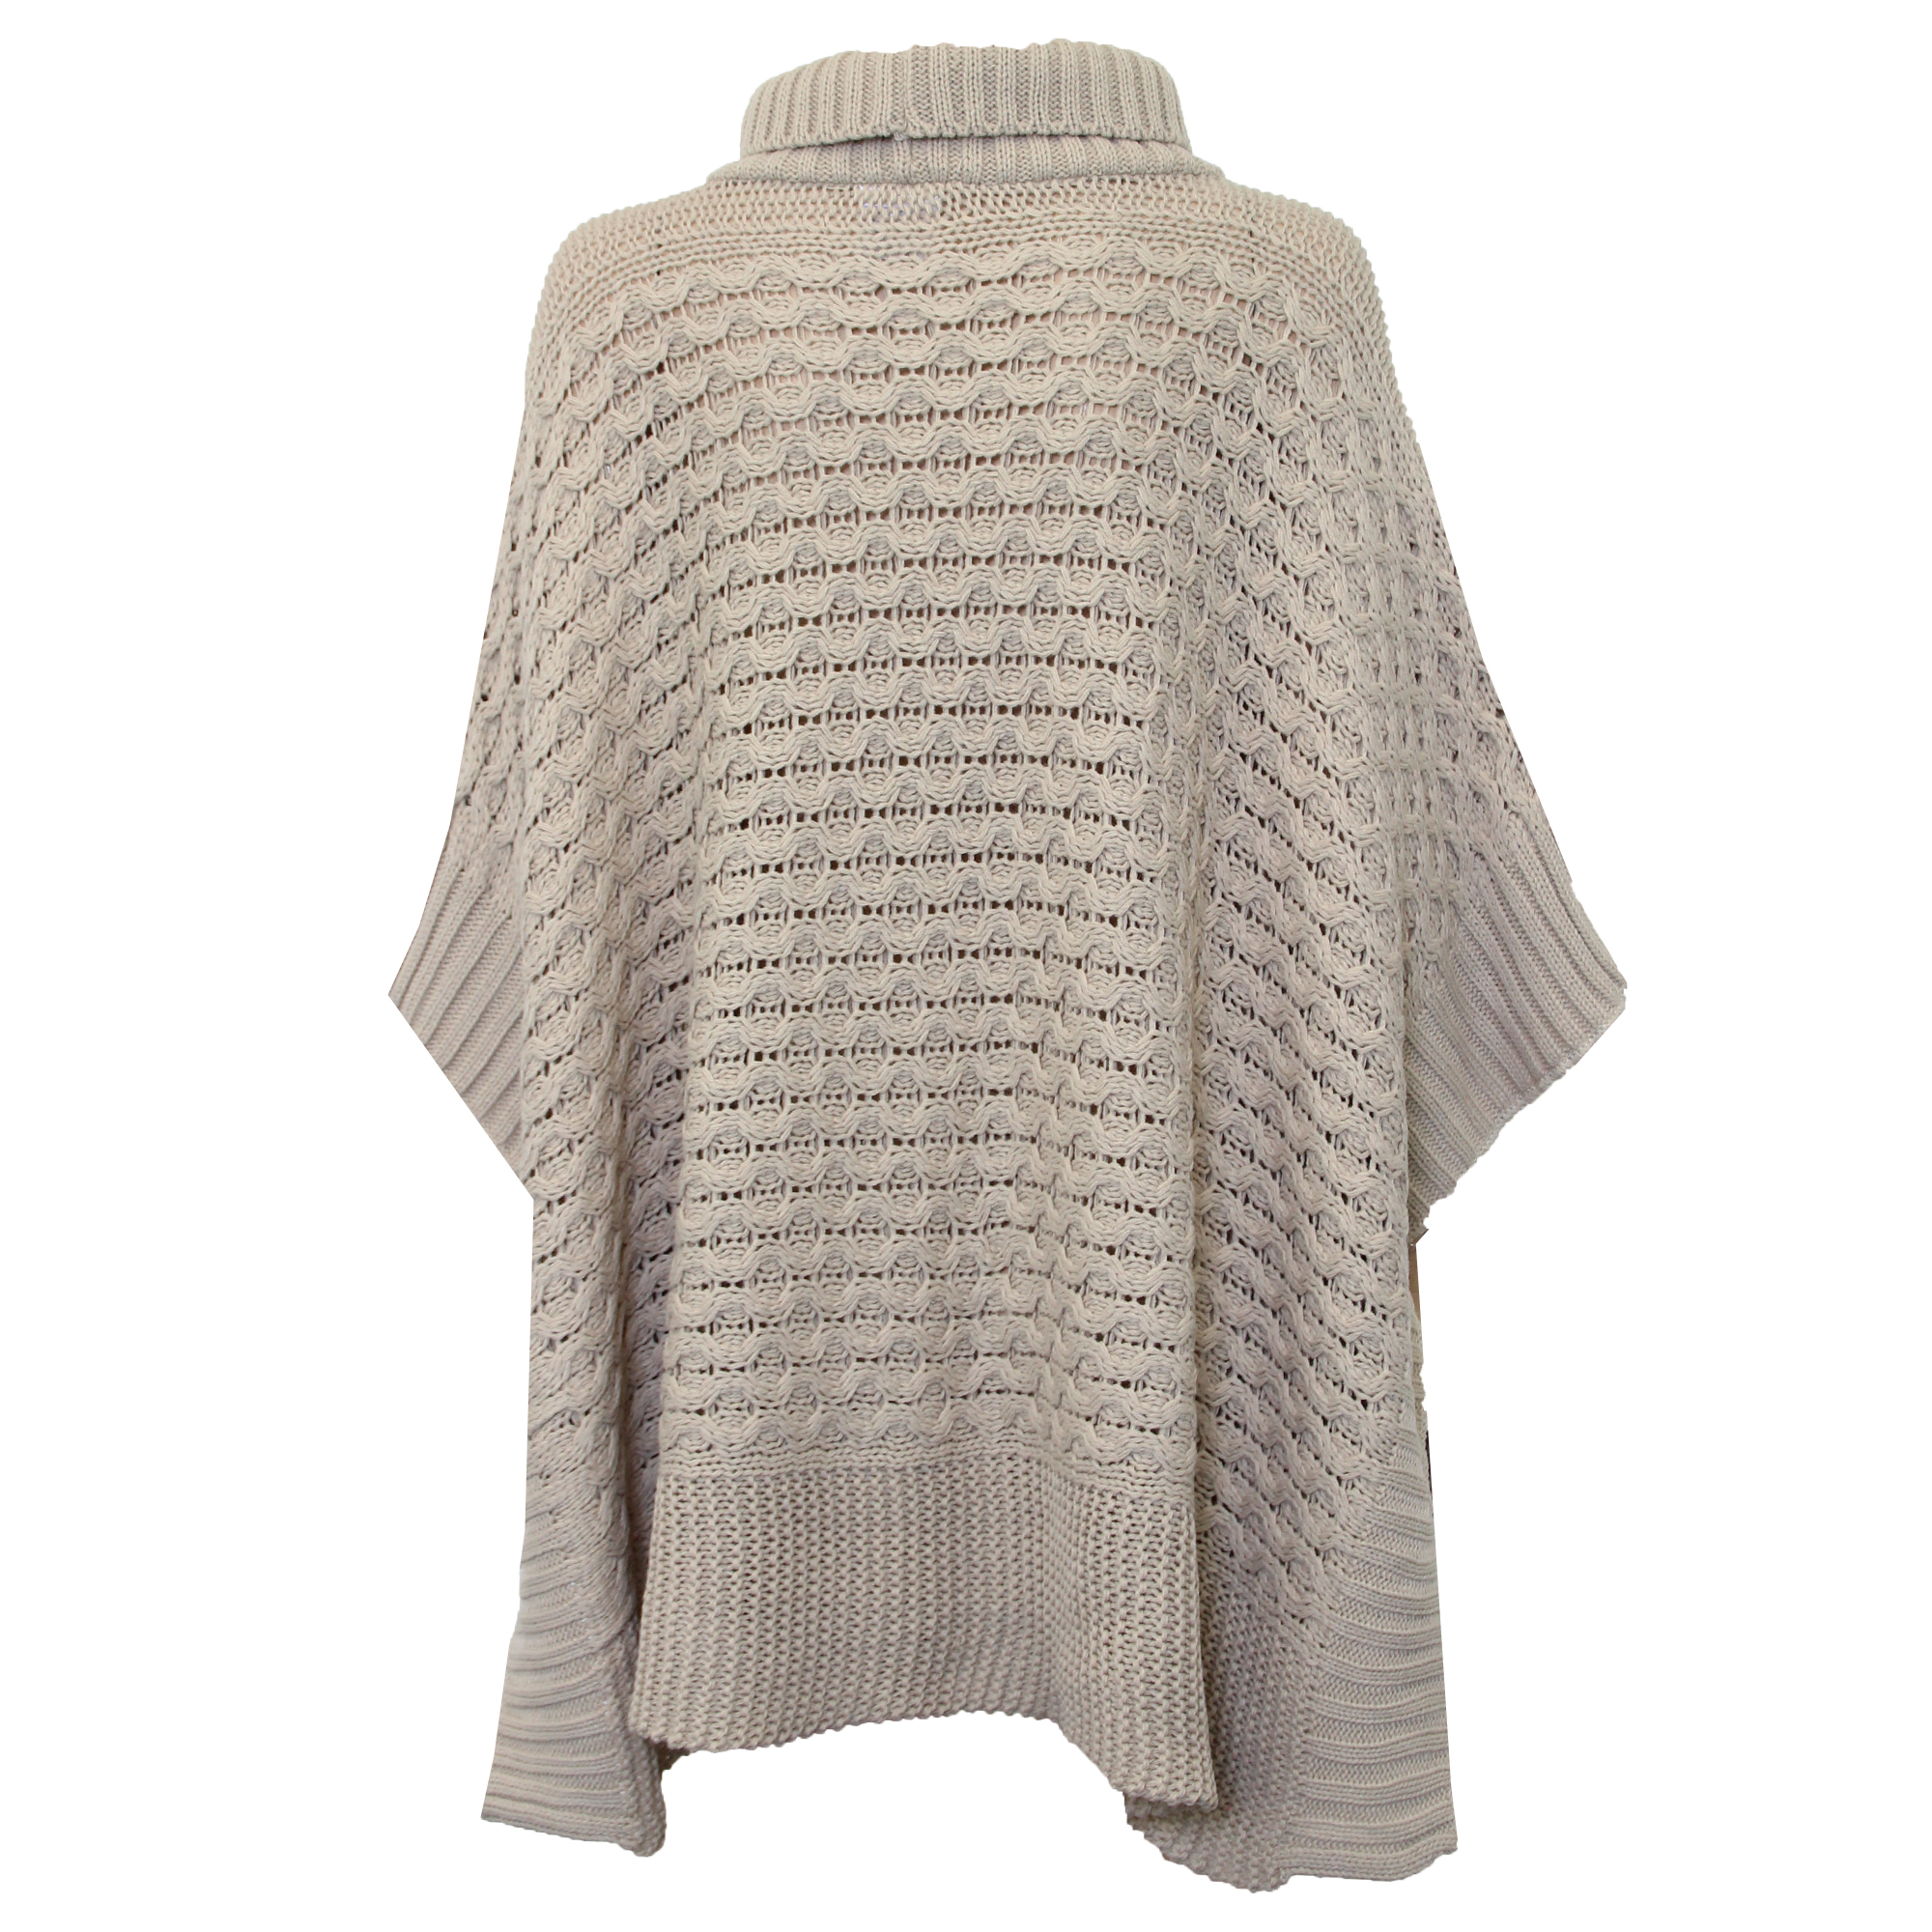 Ladies Shawl Sweater Ladies Poncho Jumper Womens Knitted Cape Sweater Top Check